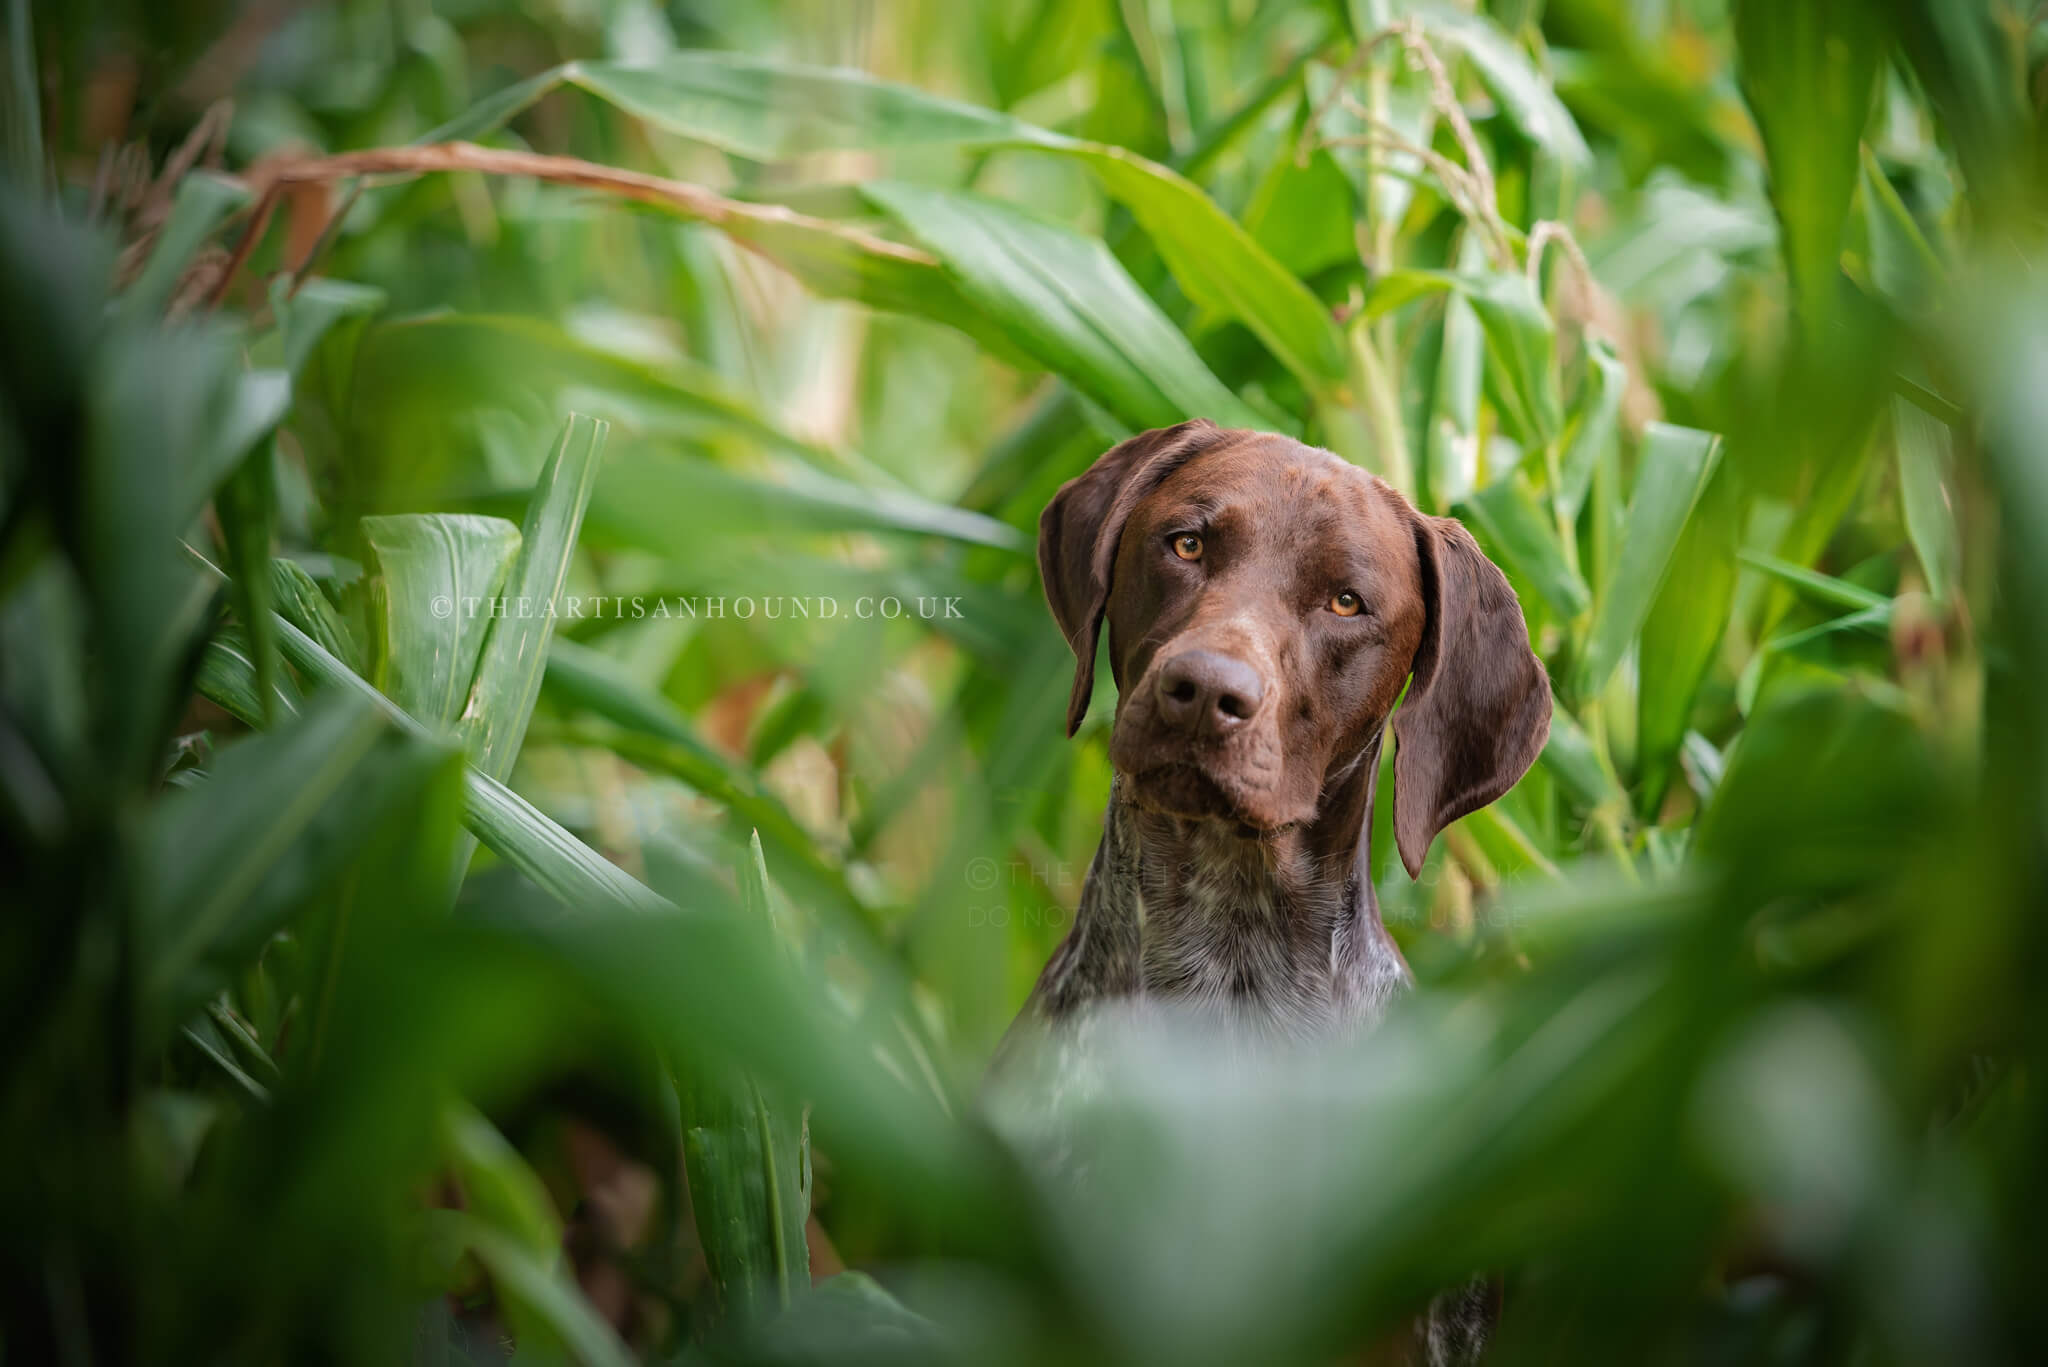 gsp-portrait-photo-in-corn-field